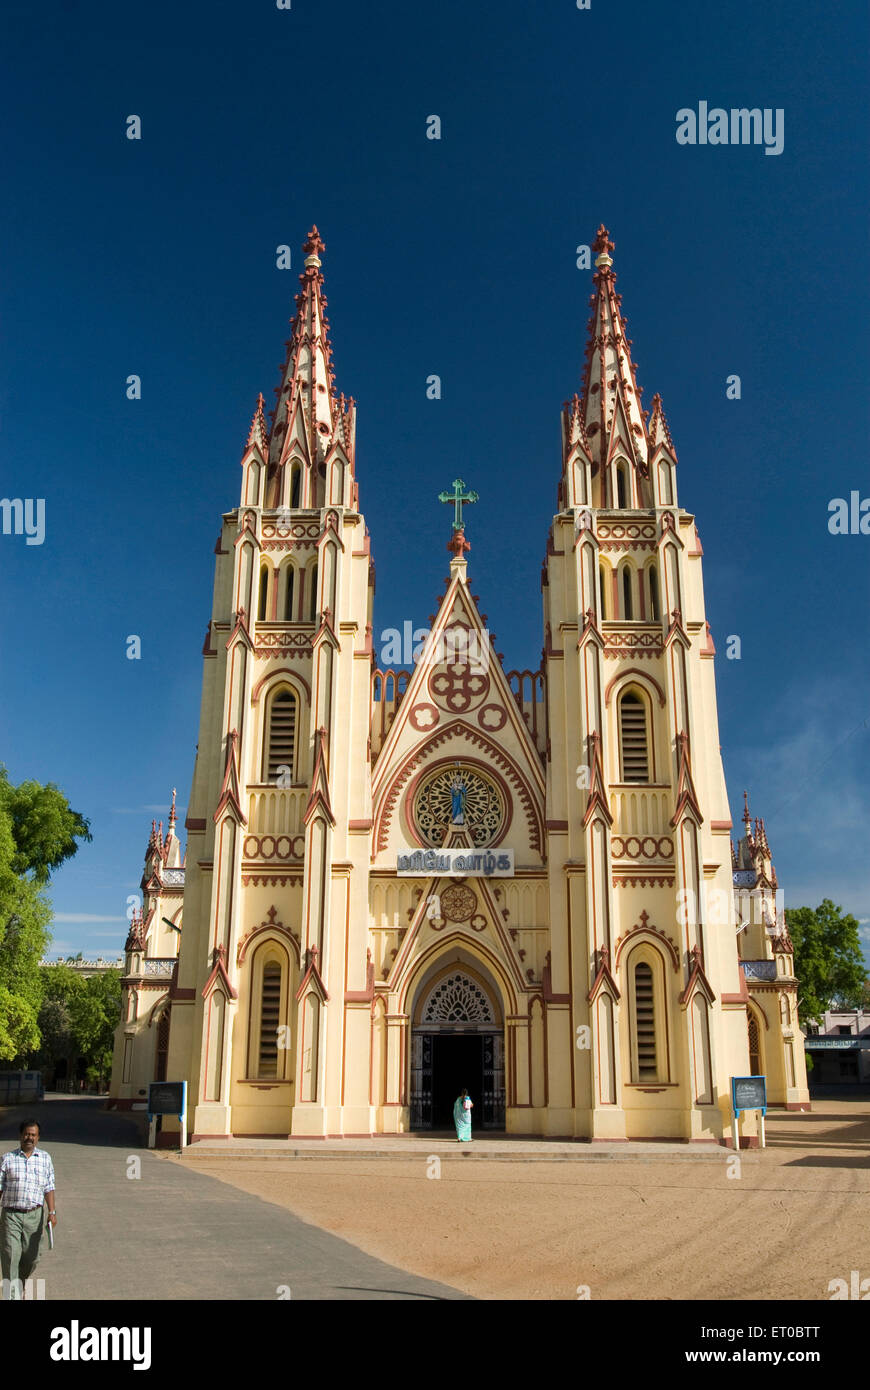 Saint Mary cathedral constructed in 1916 ; Madurai ; Tamil Nadu ; India Stock Photo